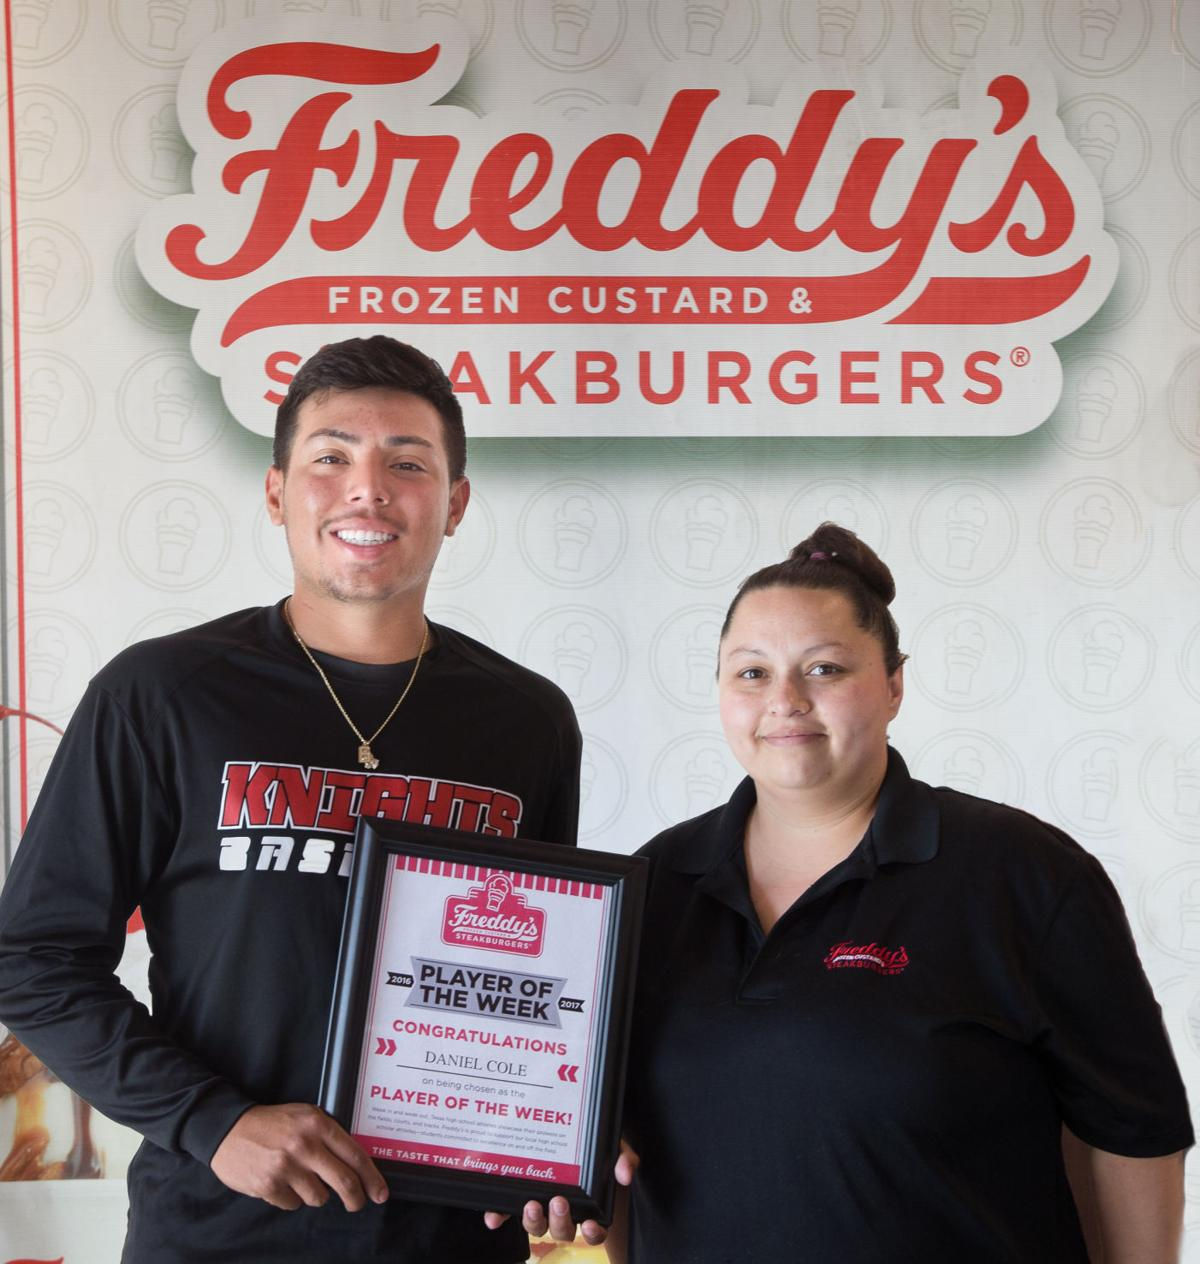 Freddy's-KDHpressbox.com Player of the Week Daniel Cole